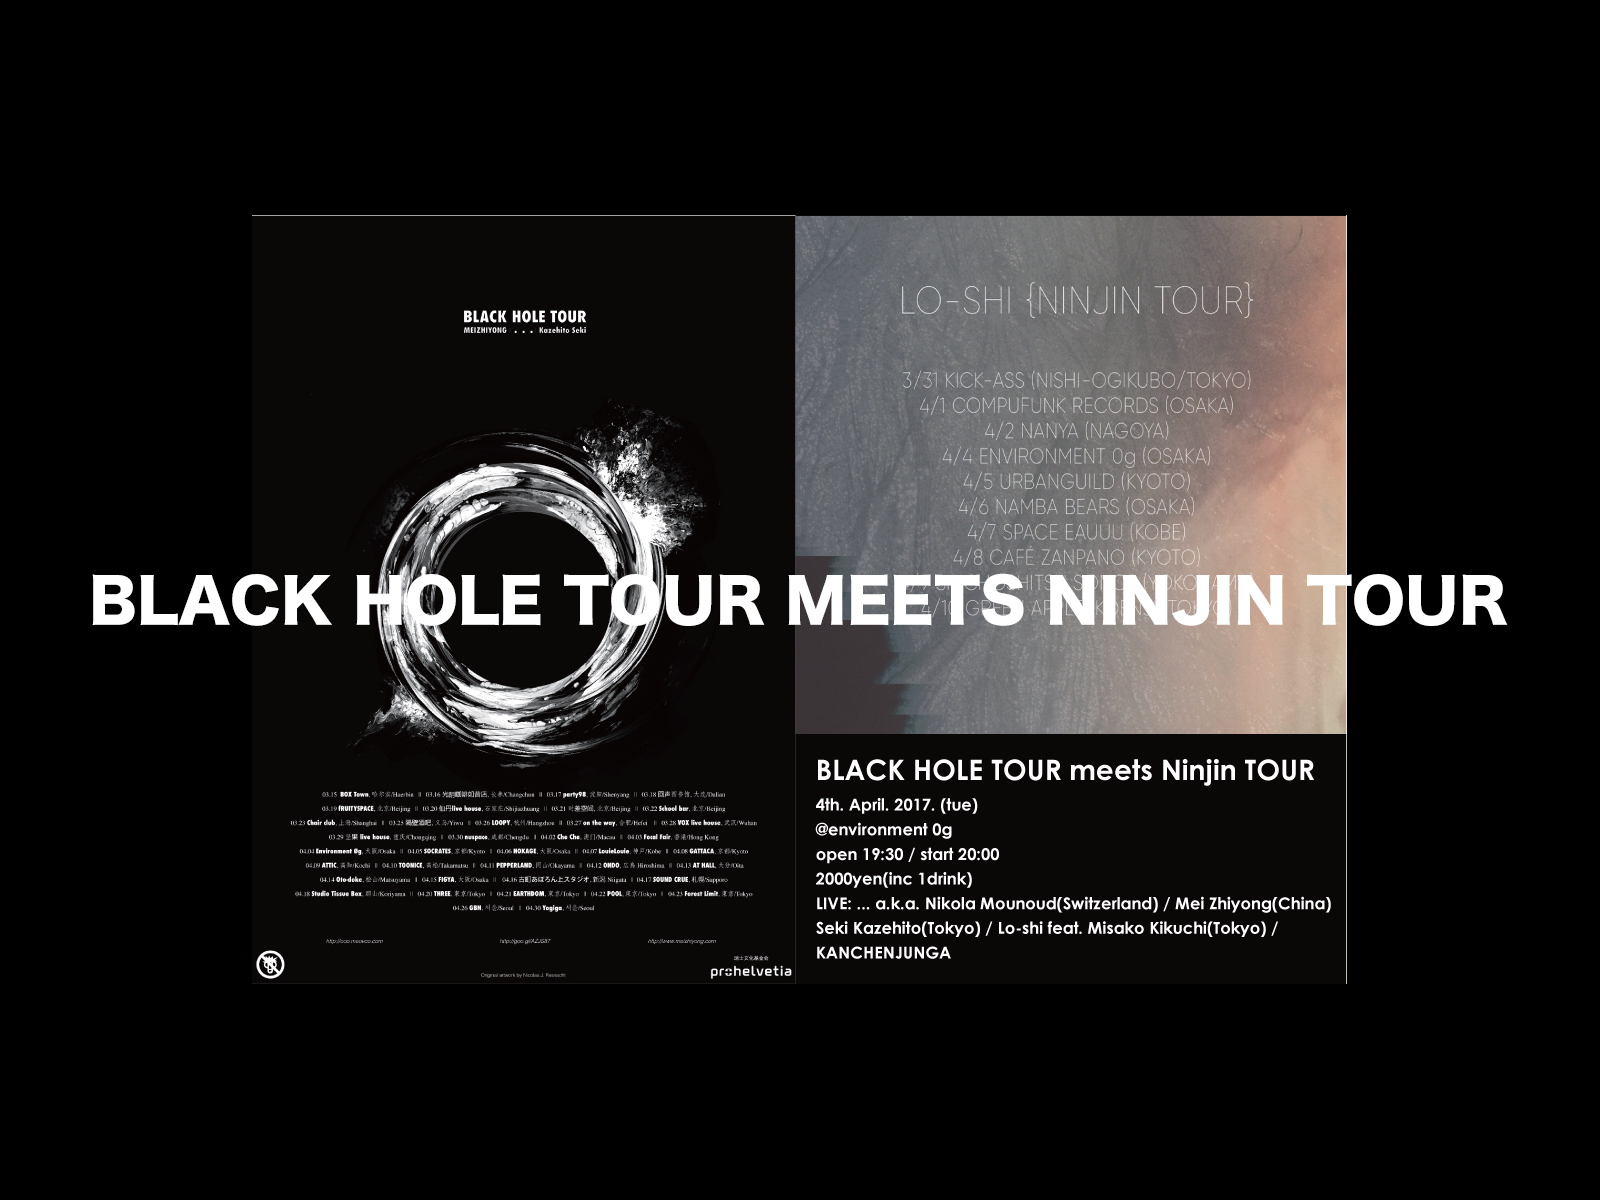 BLACK HOLE TOUR MEETS NINJIN TOUR